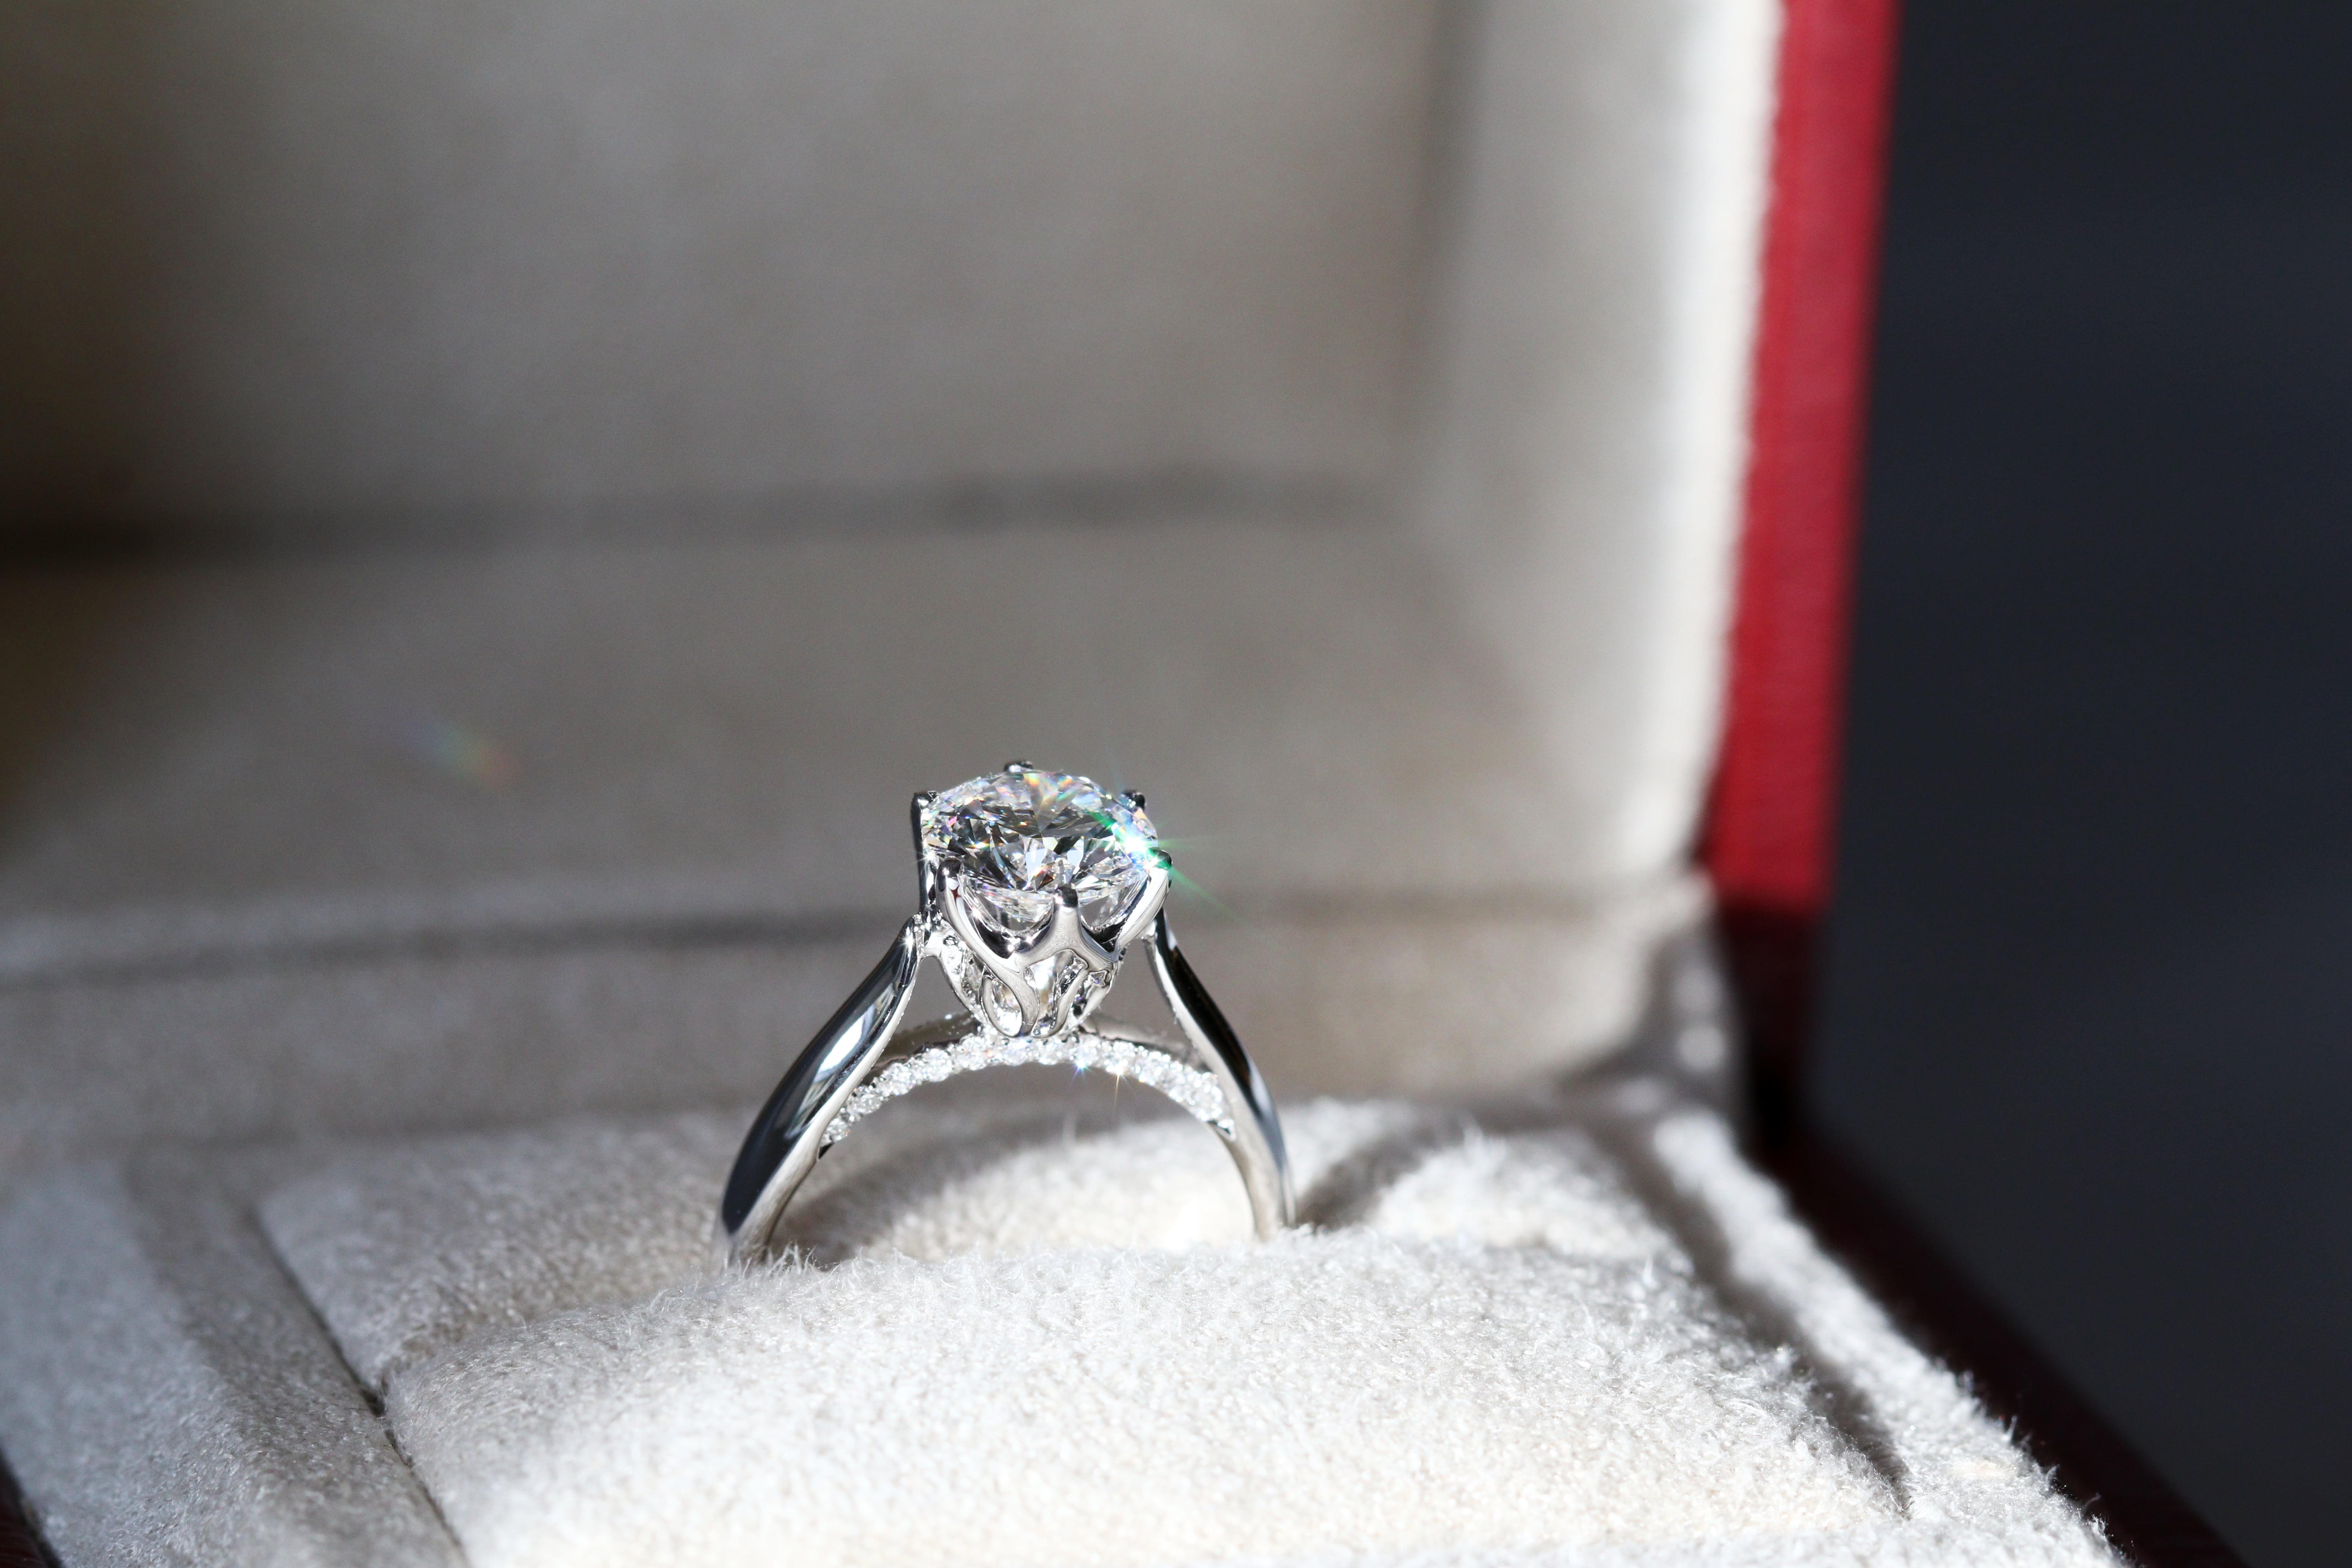 black and white photo of a diamond ring